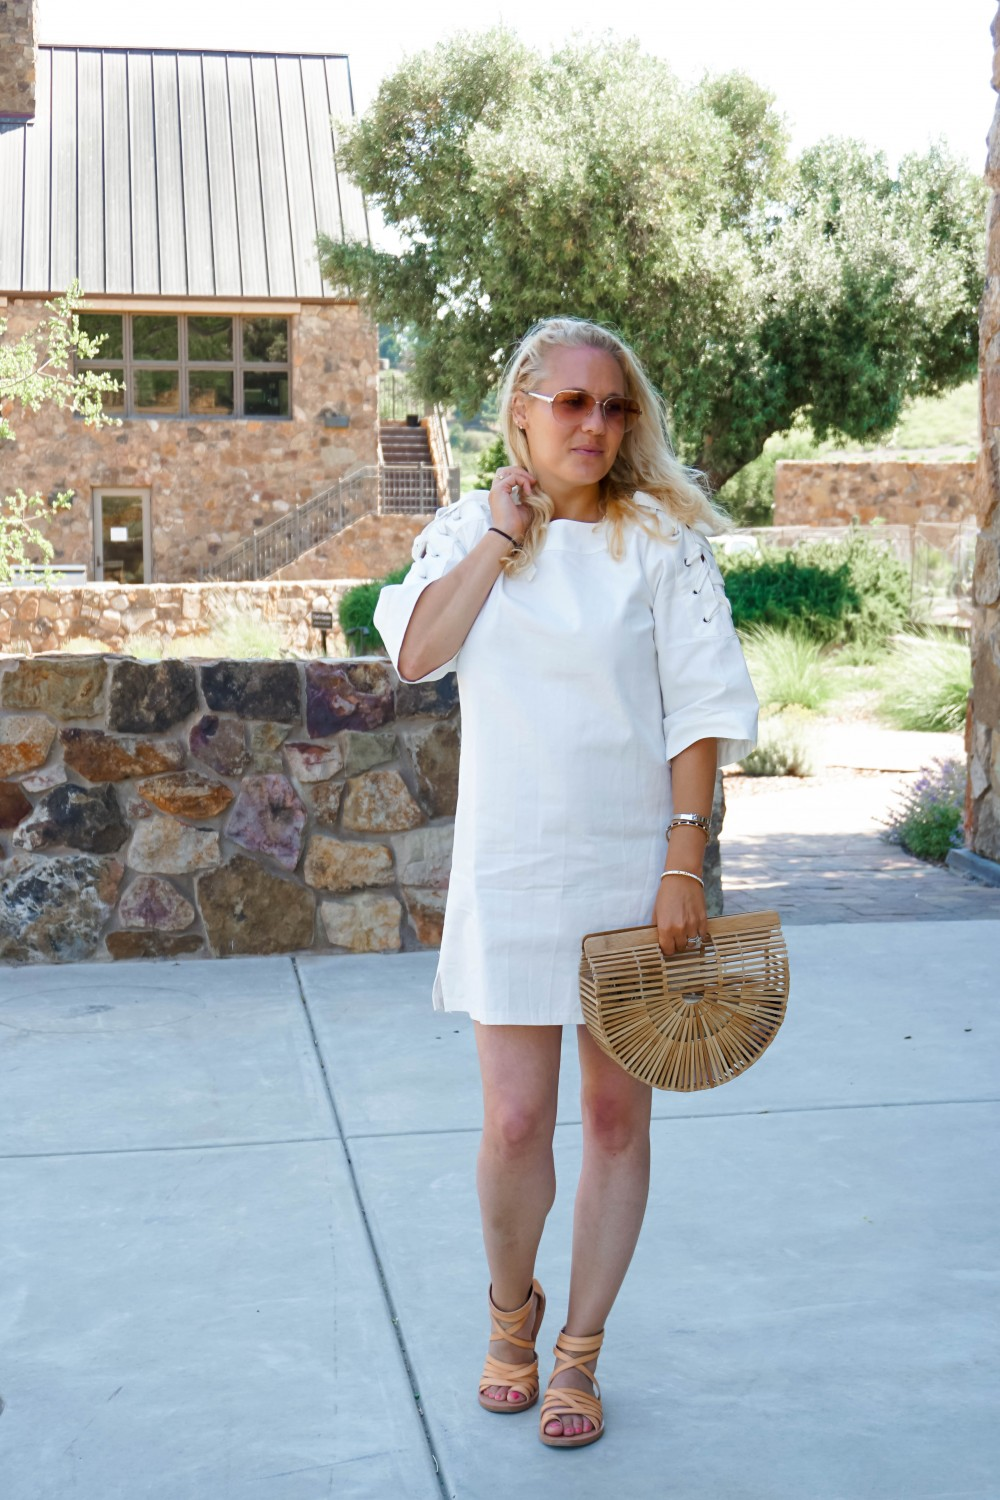 Lace-Up White Denim Dress-JOA Denim Dress-Summer Style-Bijou on the Park-Have Need Want-Outfit Inspiration-Mom Style 7